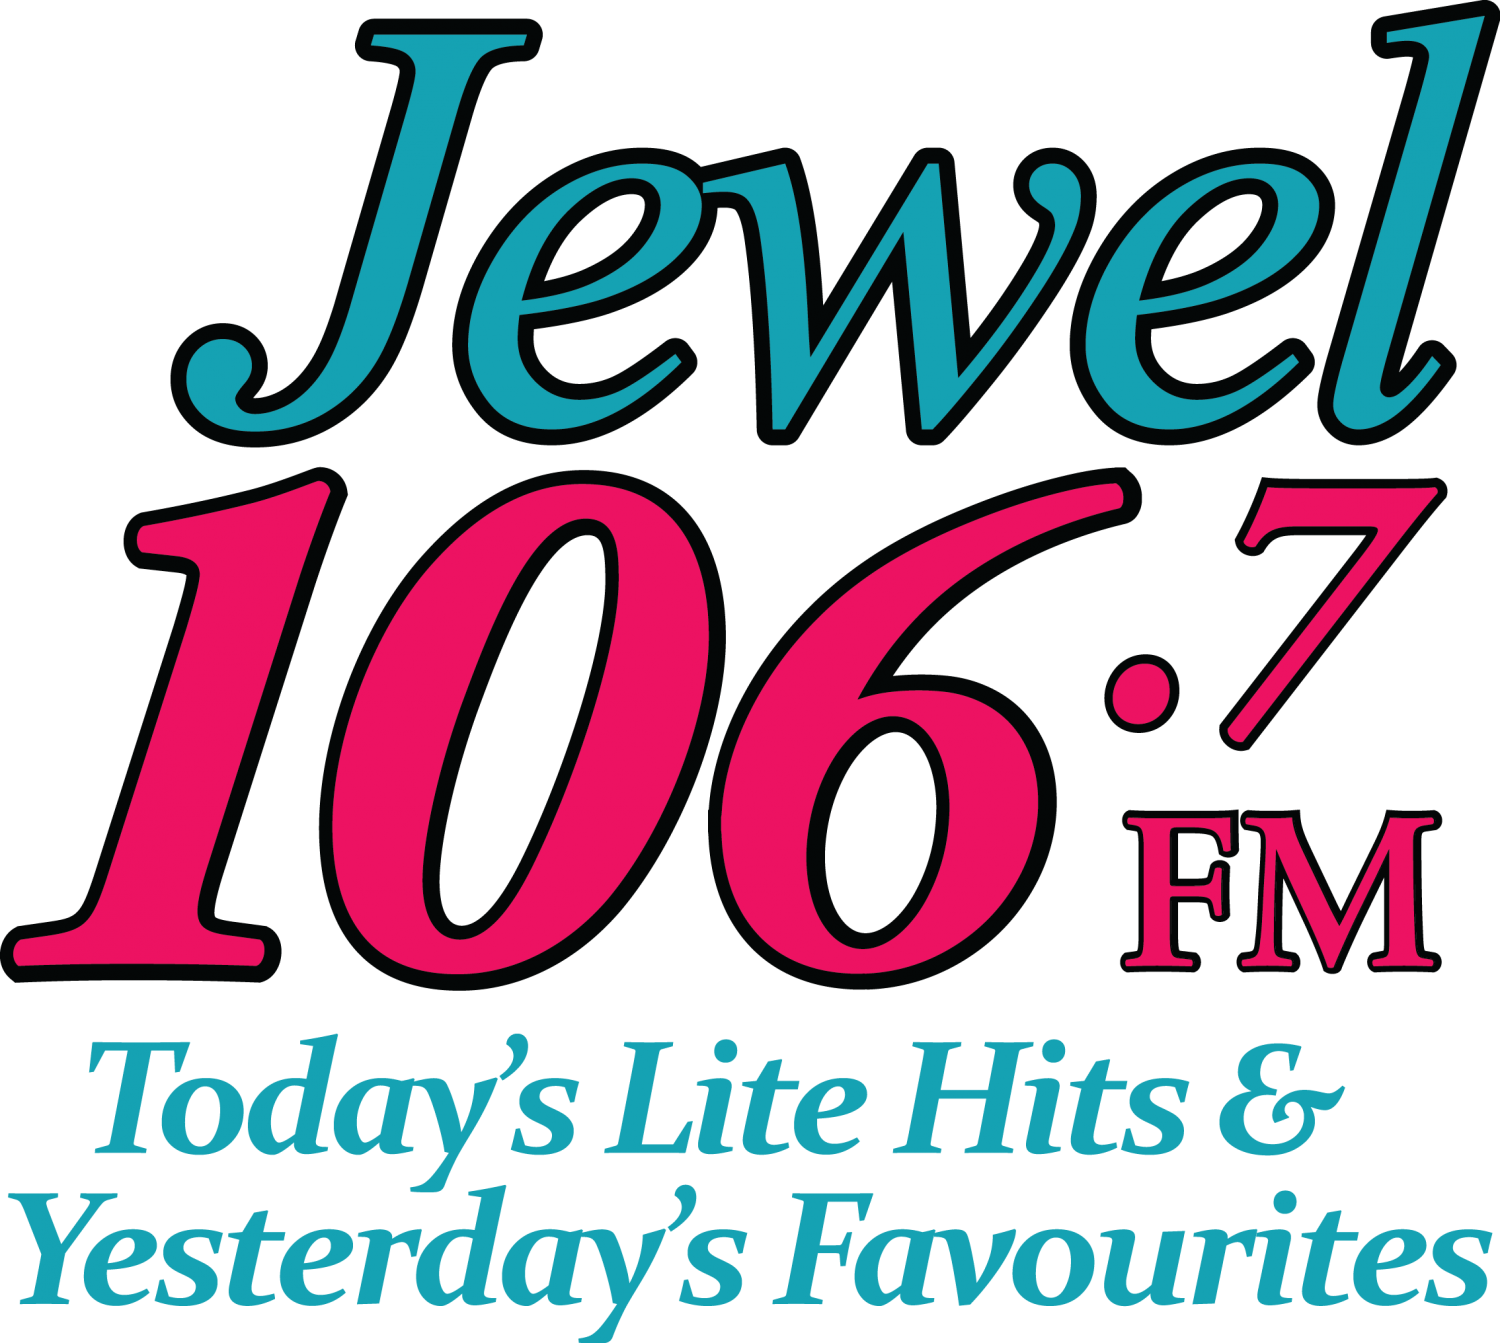 Equifax Hack-Attack interview on the Jewel 106.7FM